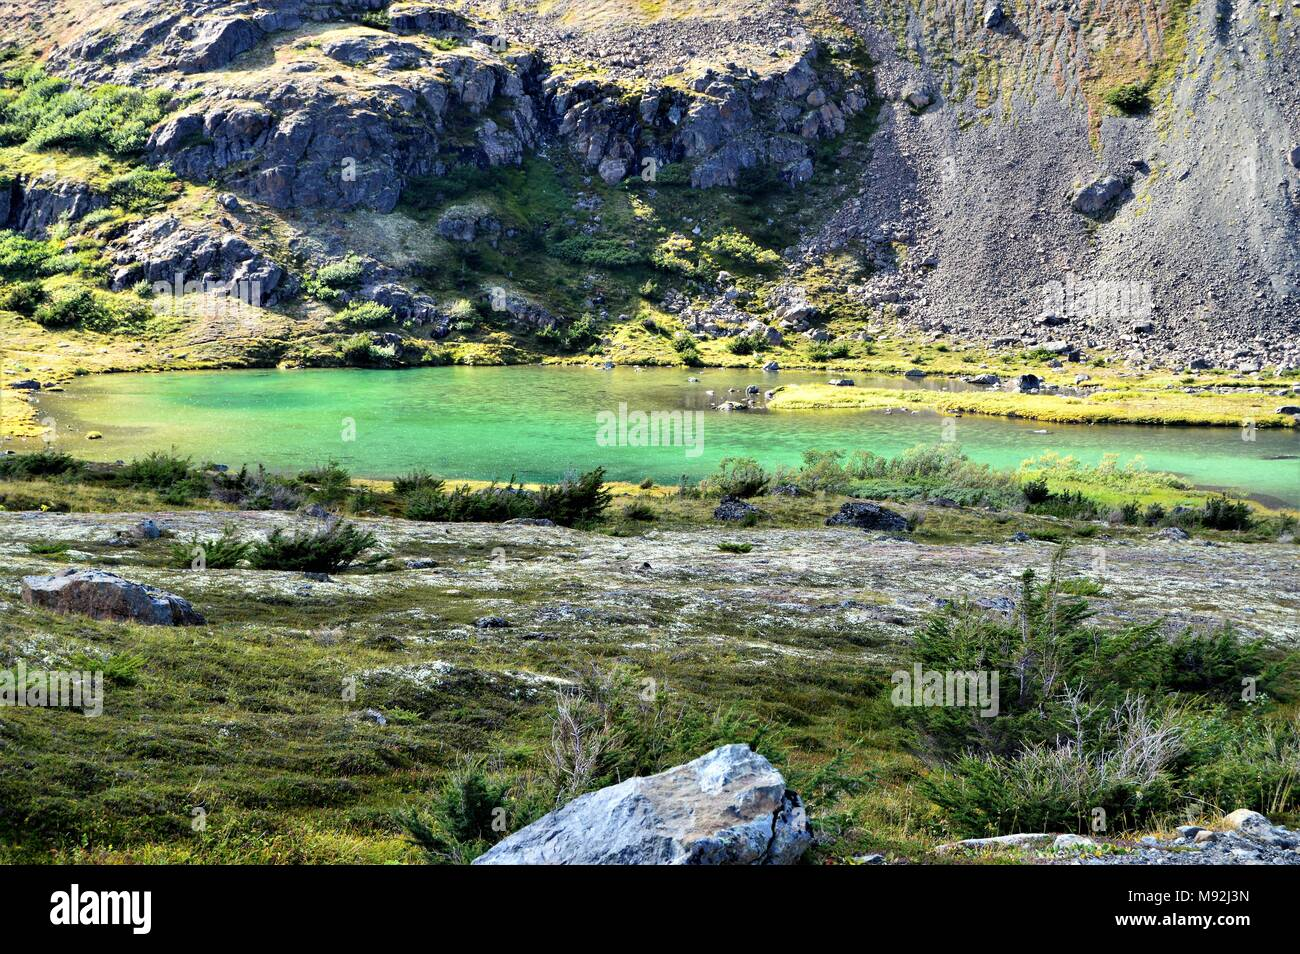 Little green lake found in a valley in a summit in the Chugach Mountains above Anchorage, Alaska on hiking trail. - Stock Image